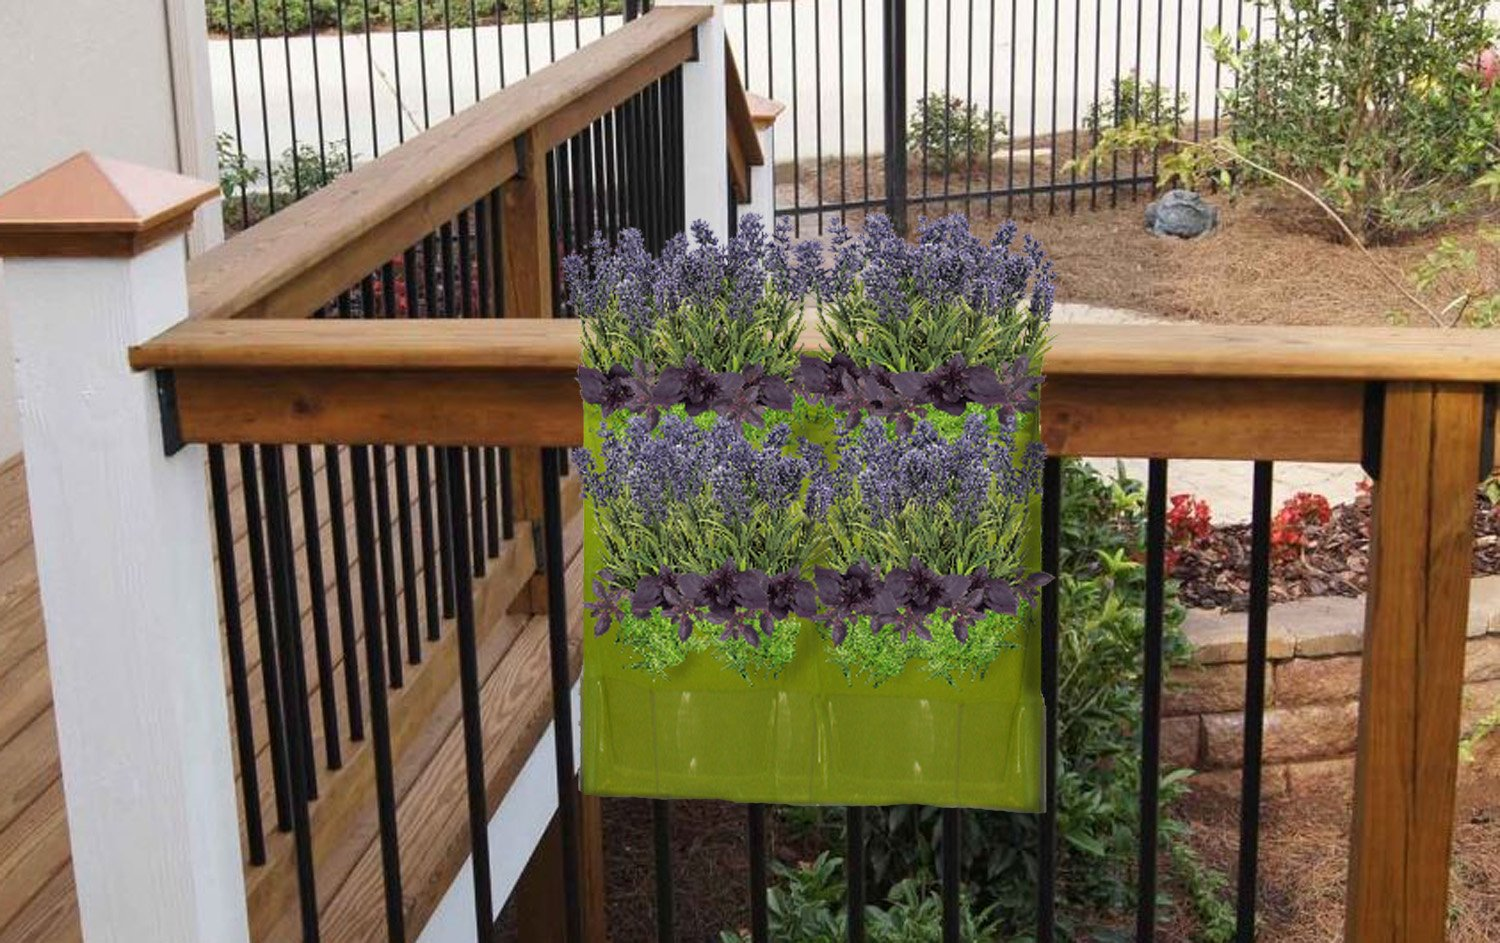 Vertical Hanging Planter Wall Garden Herb Kit Indoor